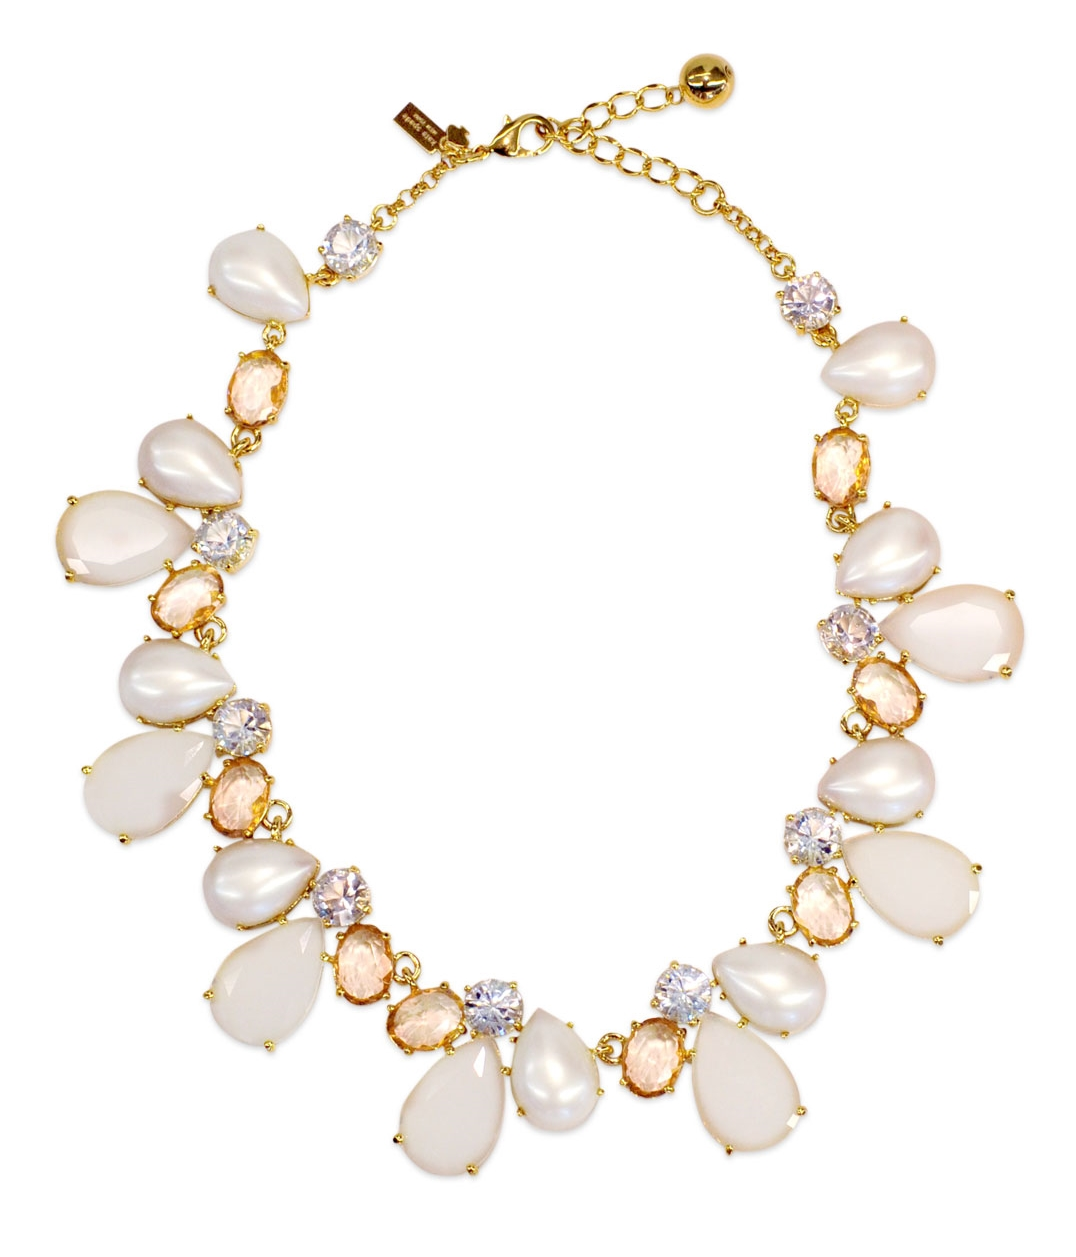 jewelry_necklace_kate_spade_crystal_chapel_cluster_0.jpg